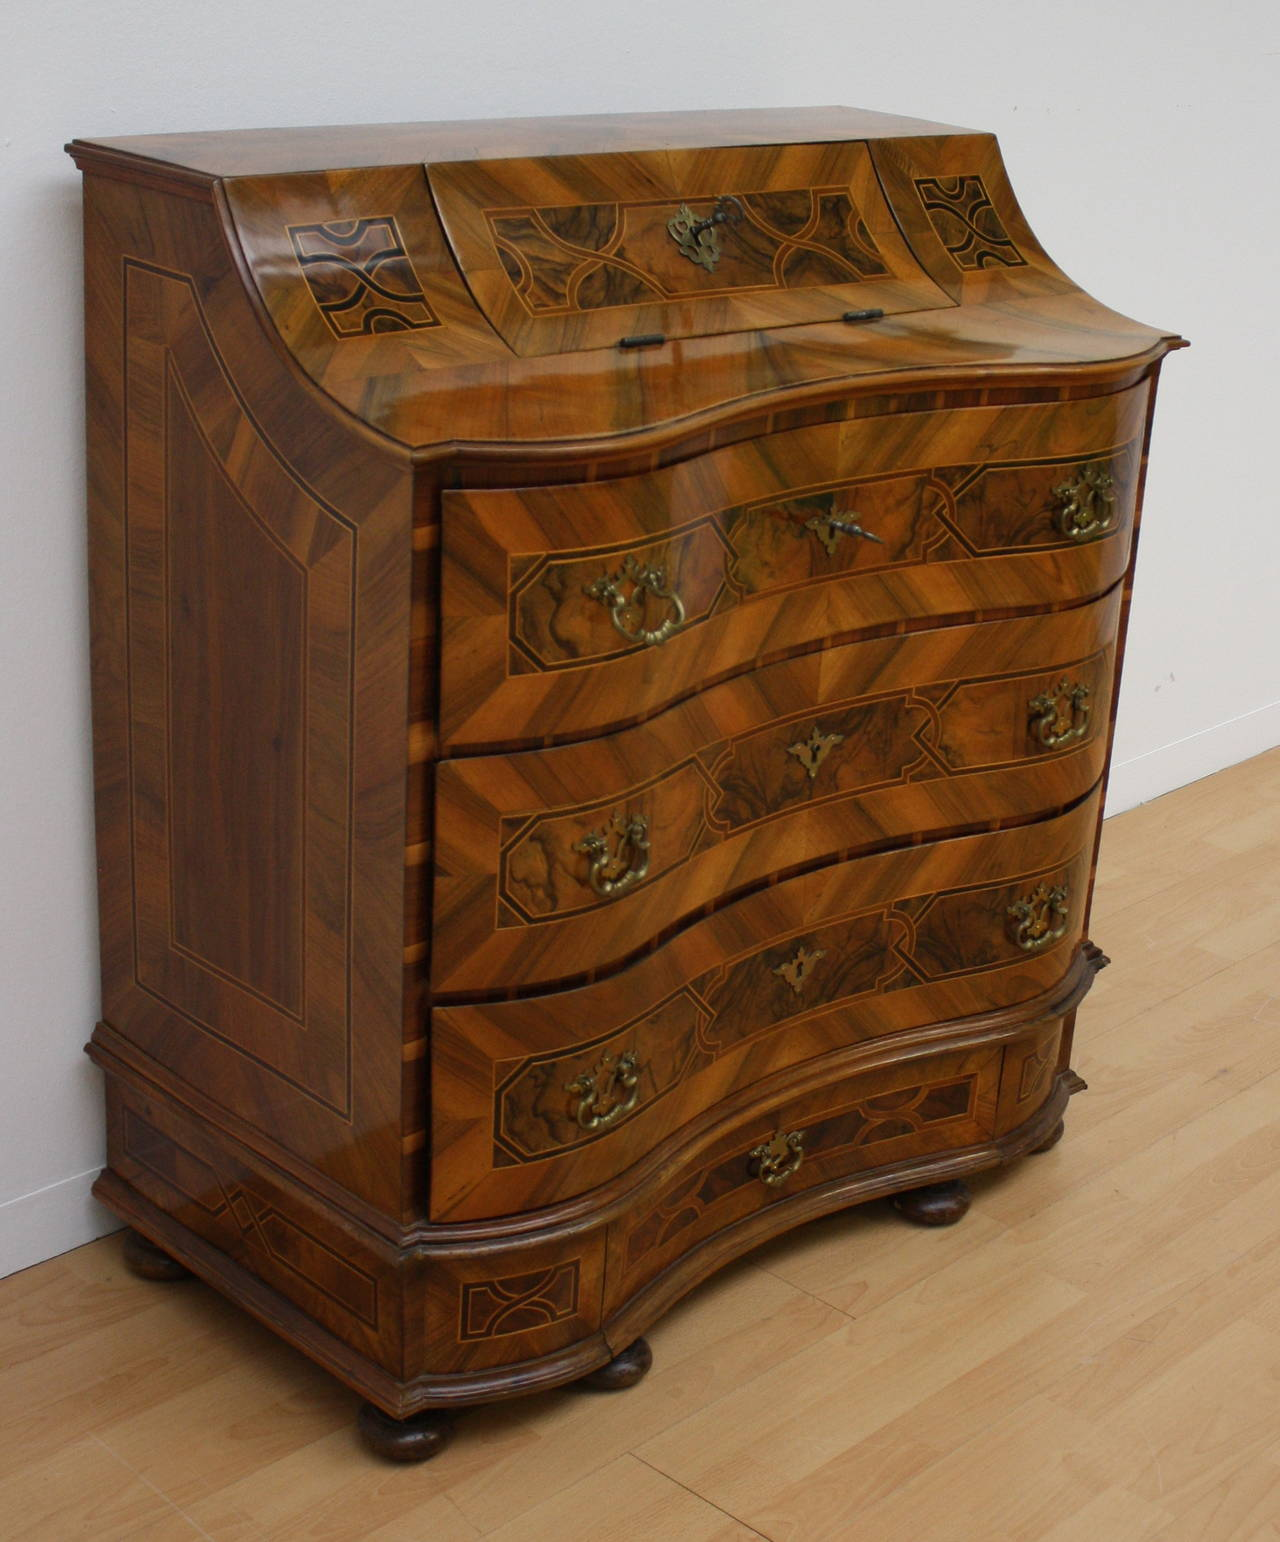 18th century baroque commode and secretaire for sale at 1stdibs. Black Bedroom Furniture Sets. Home Design Ideas